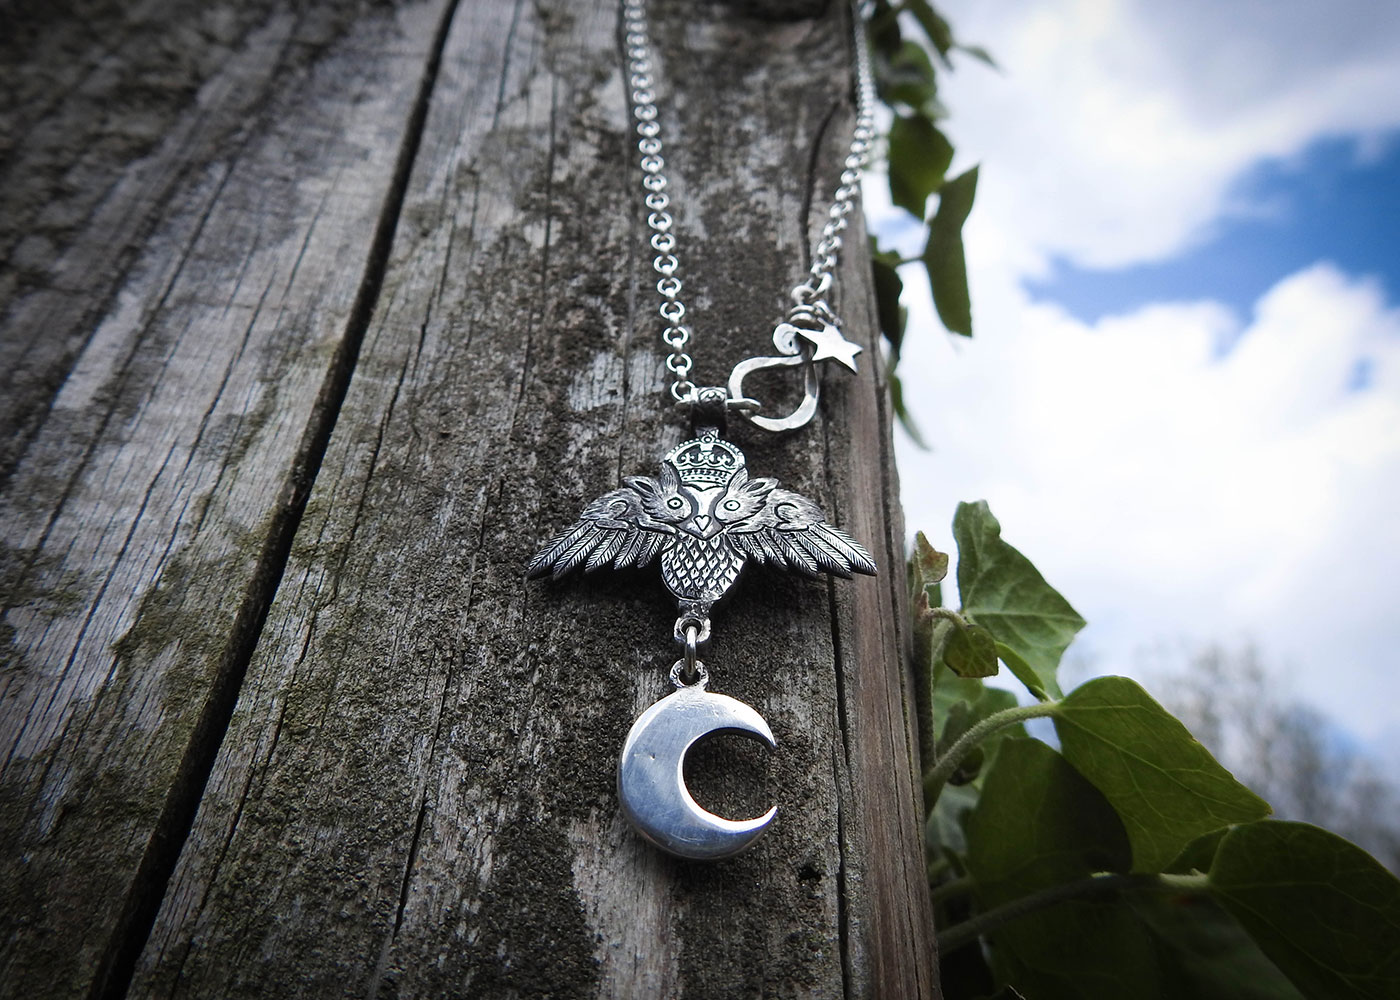 Owl necklace handcrafted and recycled original hairy growler design. Ethical jewellery made by an indepentant jewellers artisan studio. All themes and collections work in harmony with nature.